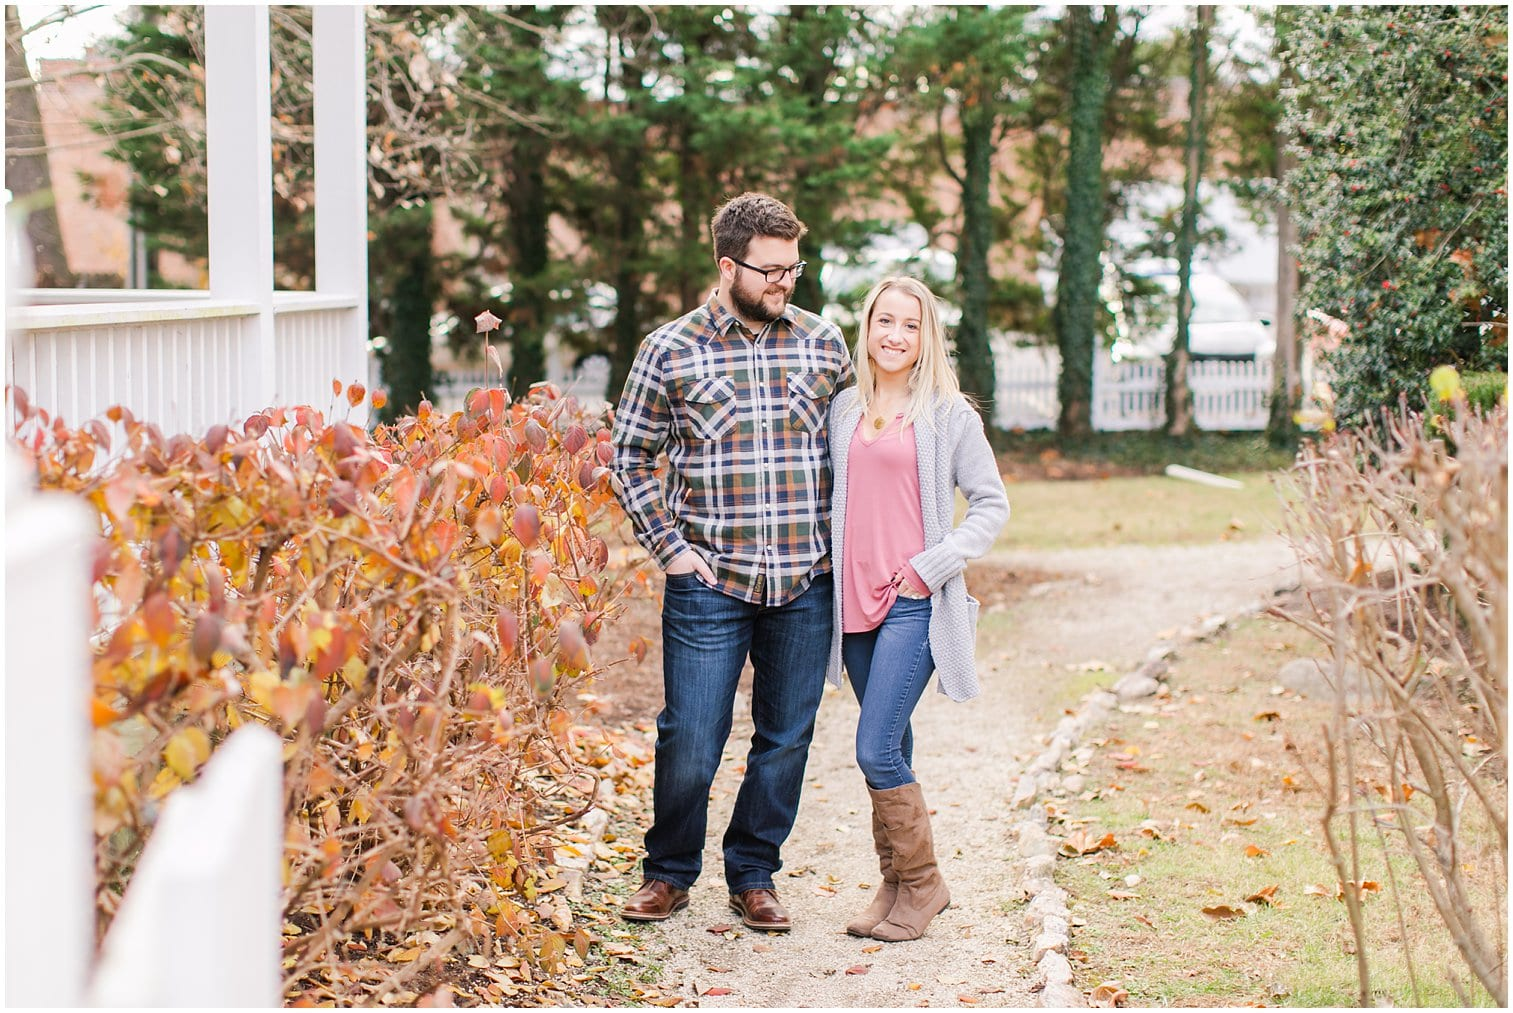 Downtown Middleburg Engagement Photos Virginia Wedding Photographer Megan Kelsey Photography Blair & Mike-88.jpg